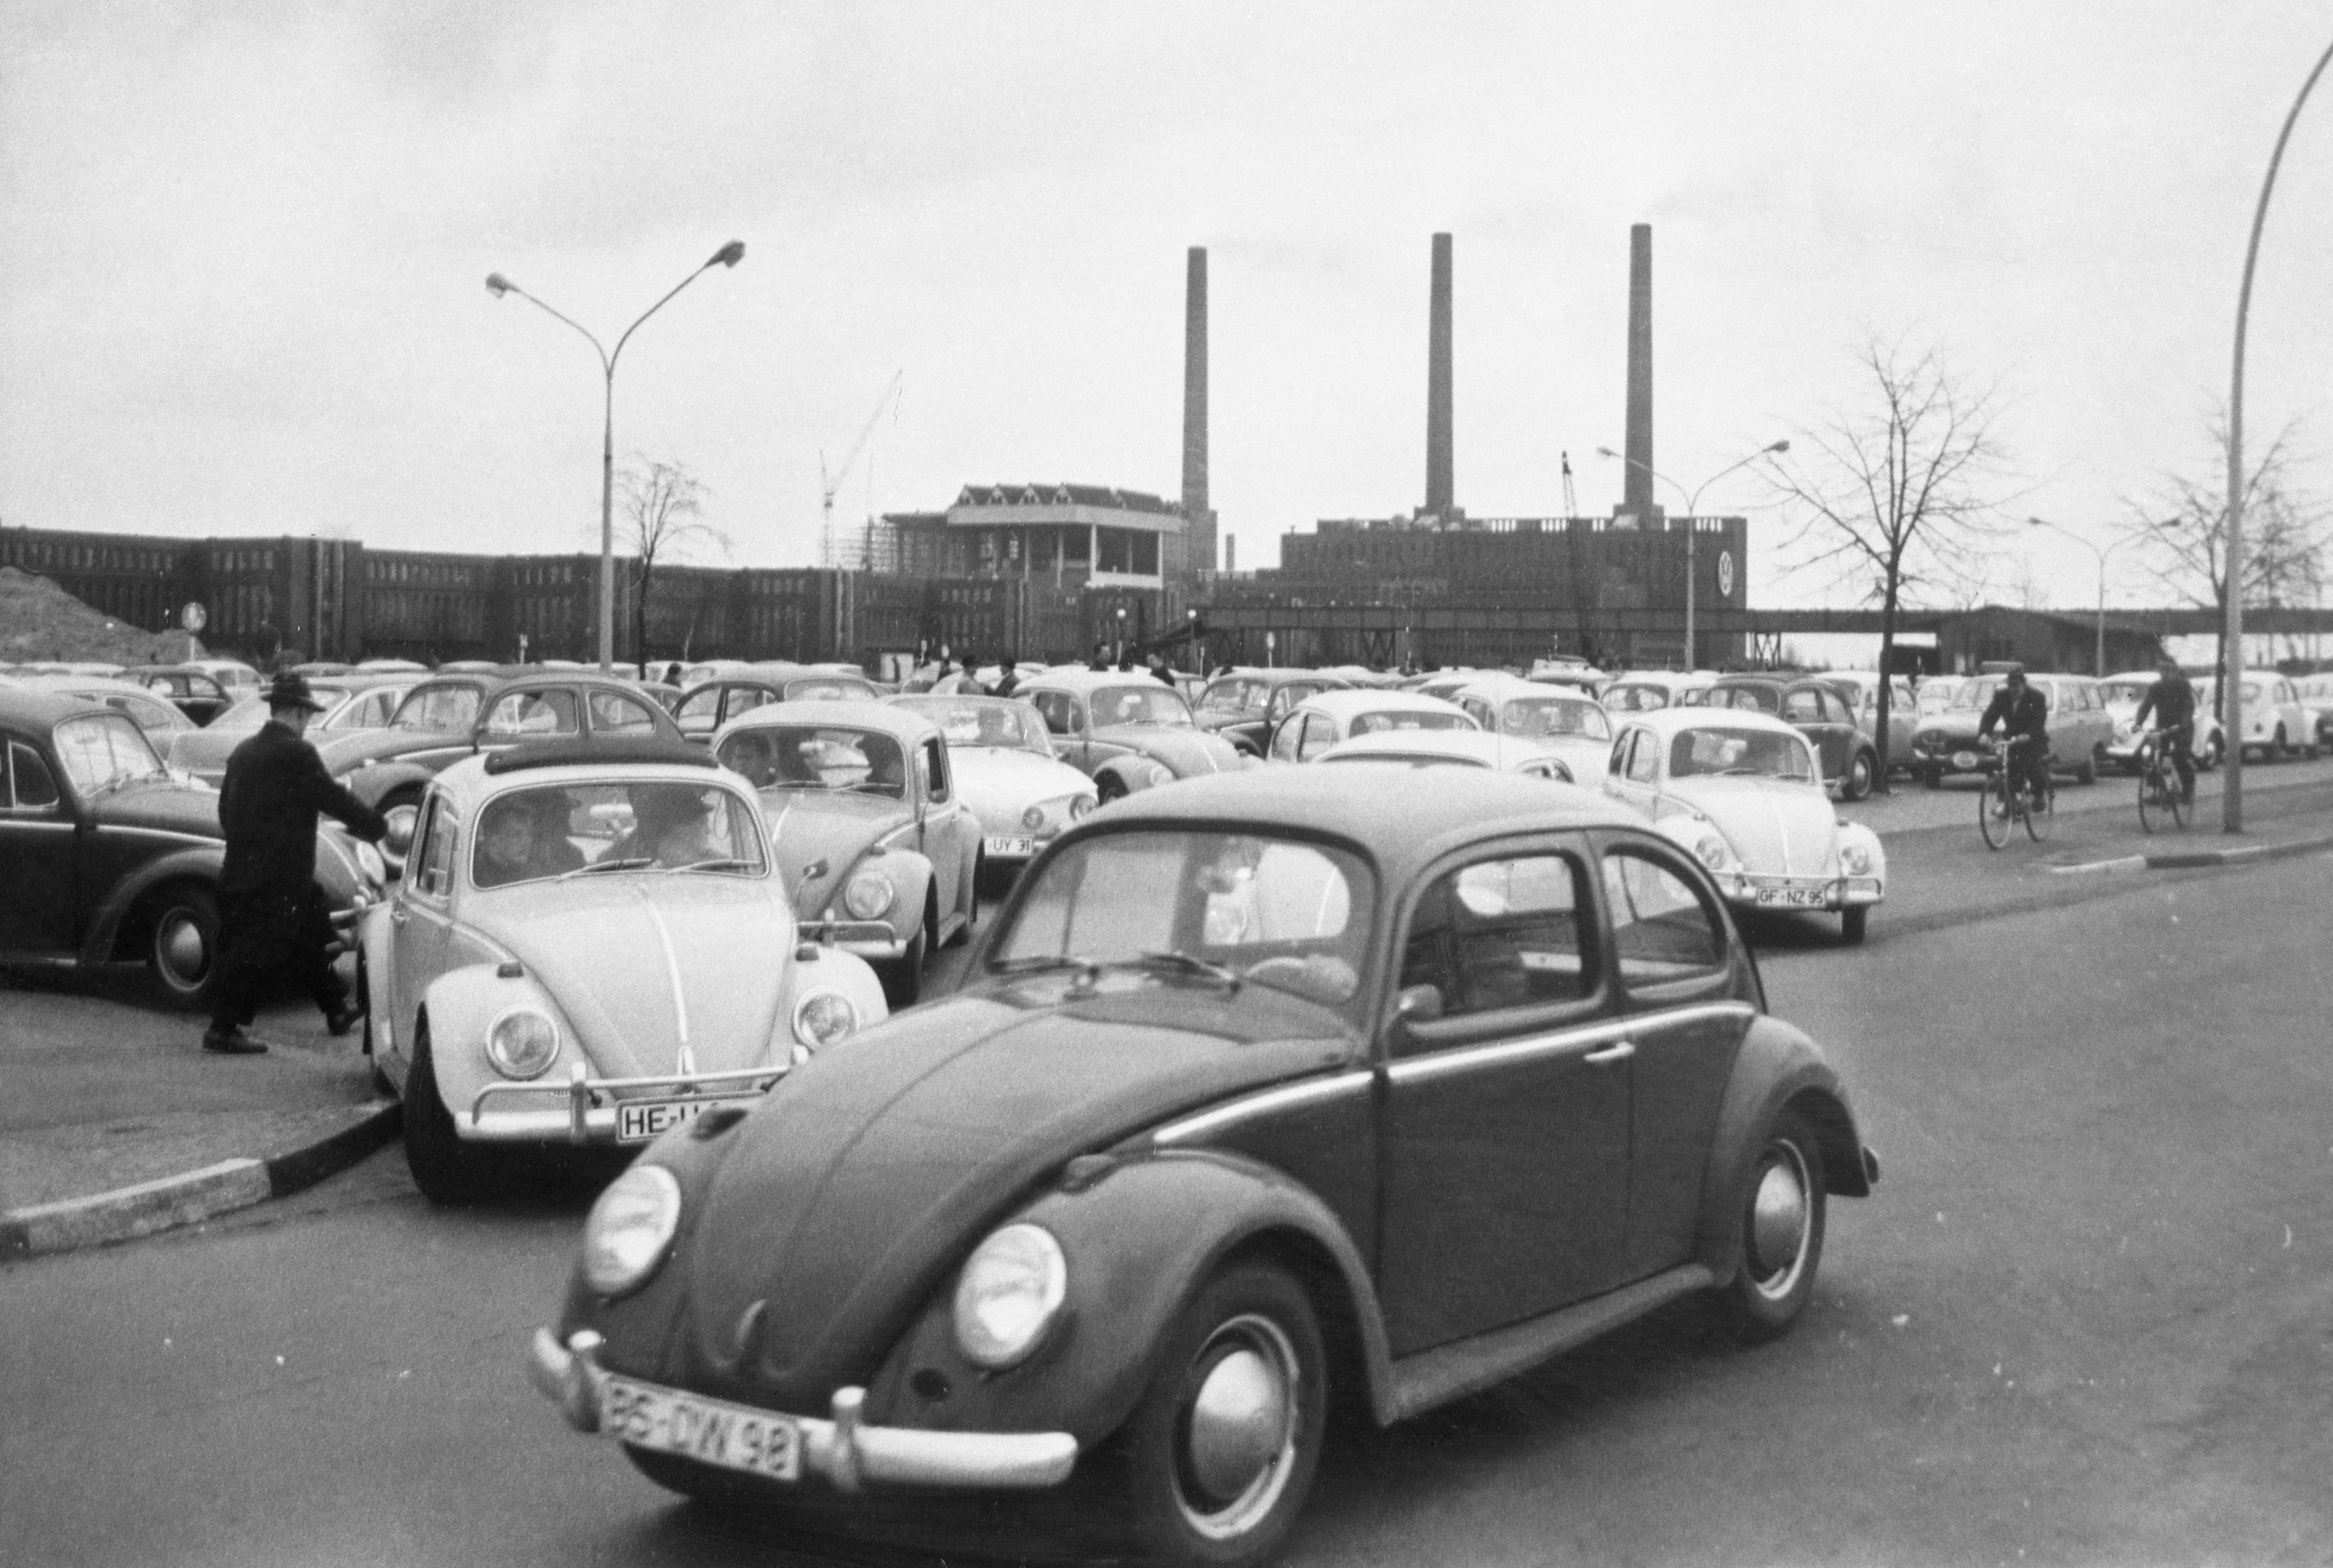 In this April 27, 1966 file photo, Volkswagen workers drive their Beetle cars from the parking lot on their way home at the end of a days work at the world's largest single auto plant, the Volkswagen factory (seen in background) in Wolfsburg, Germany. Photo: AP